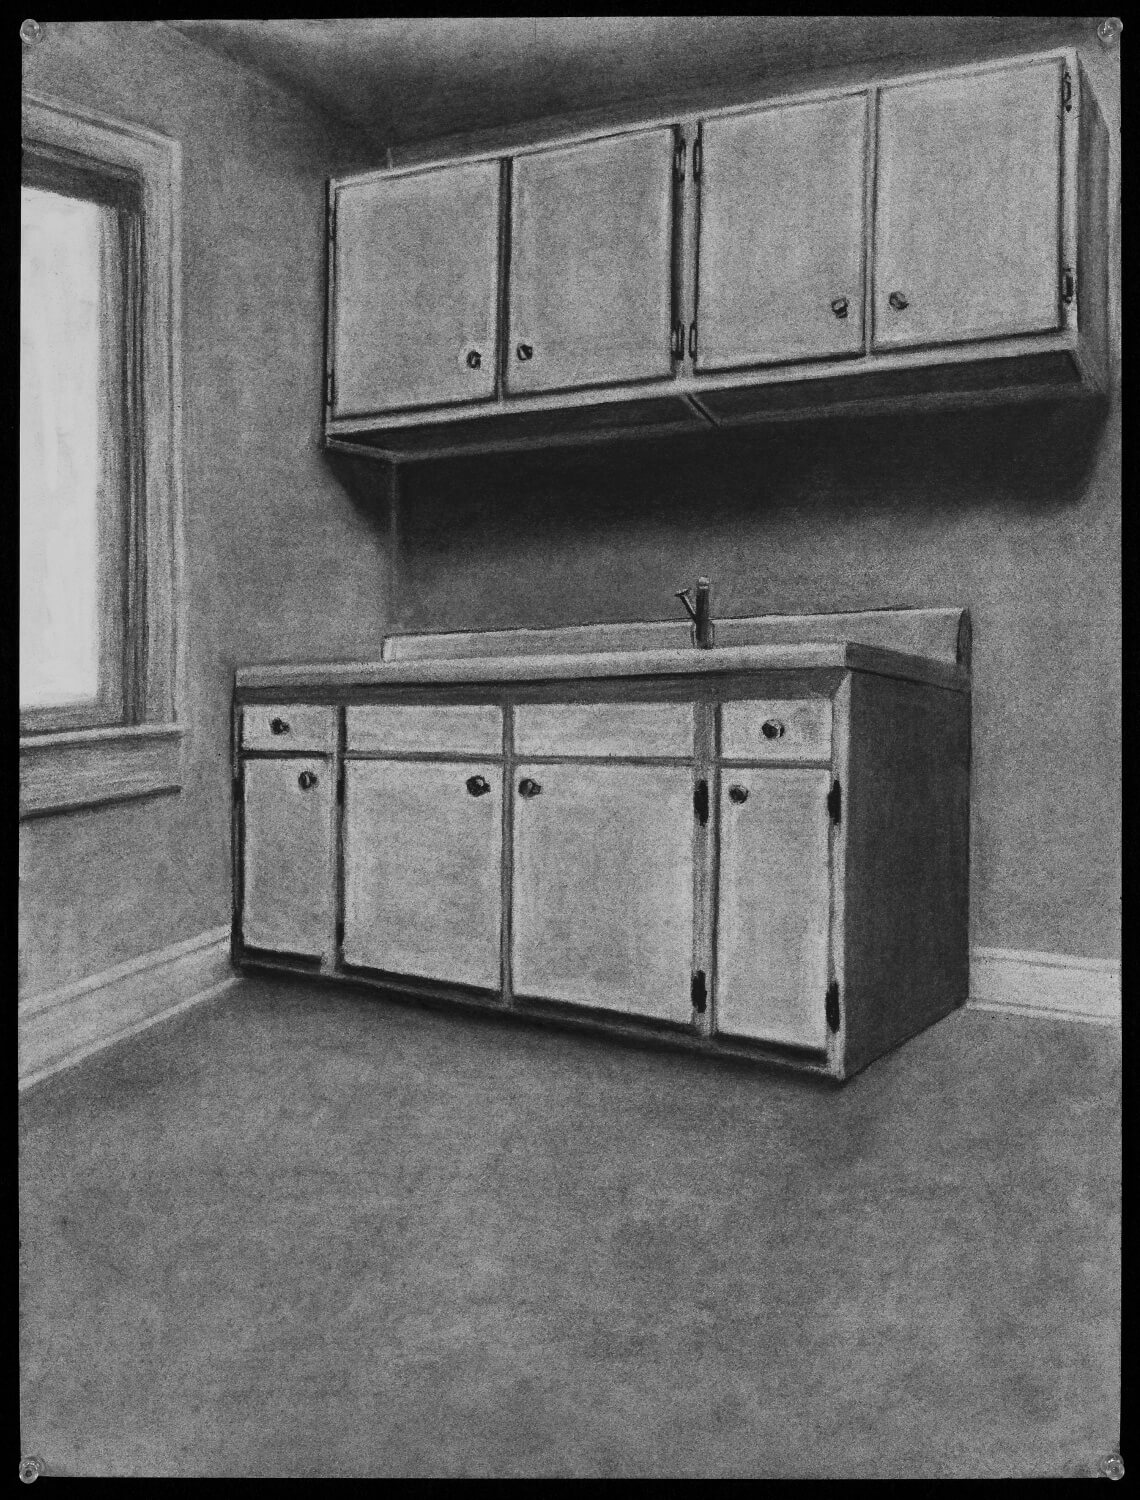 Study of Cabinets